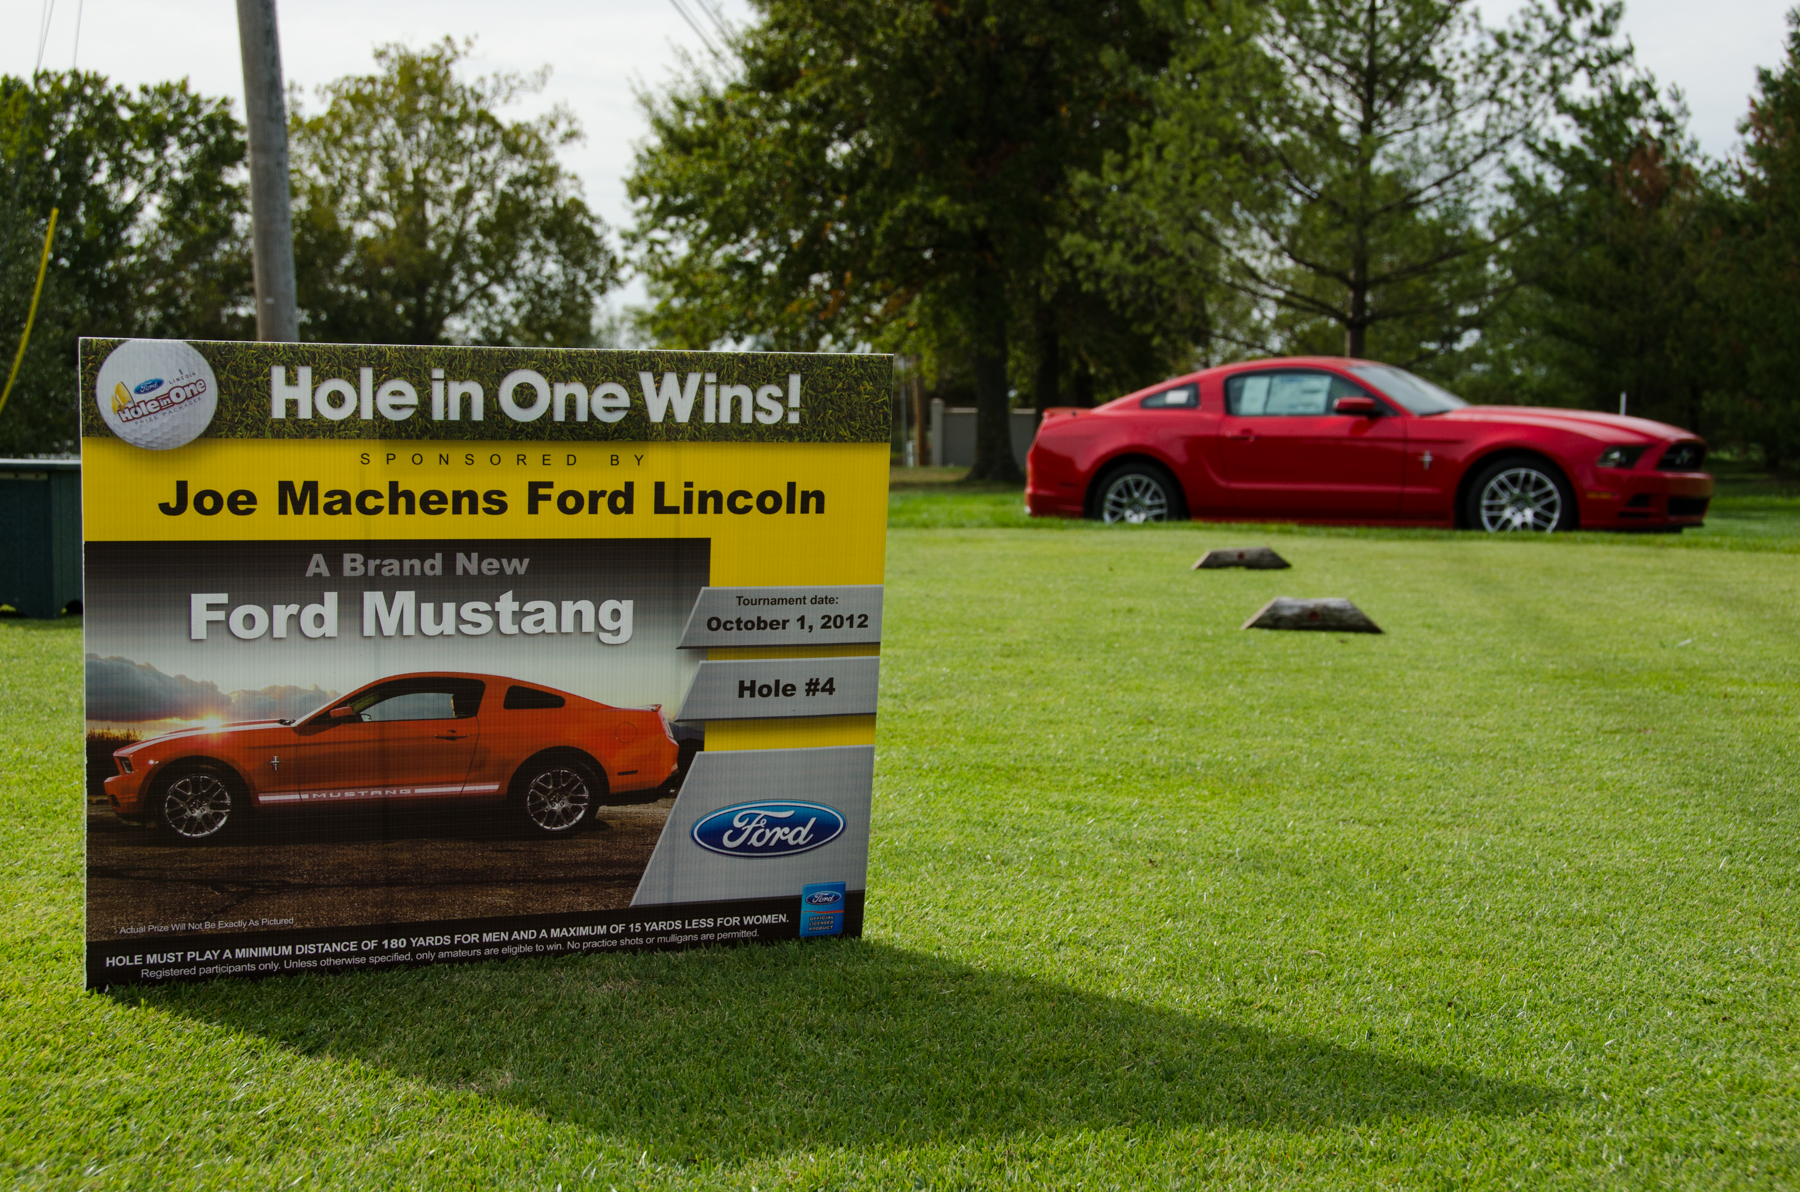 20121001_golf_tournament_094_4x6.jpg